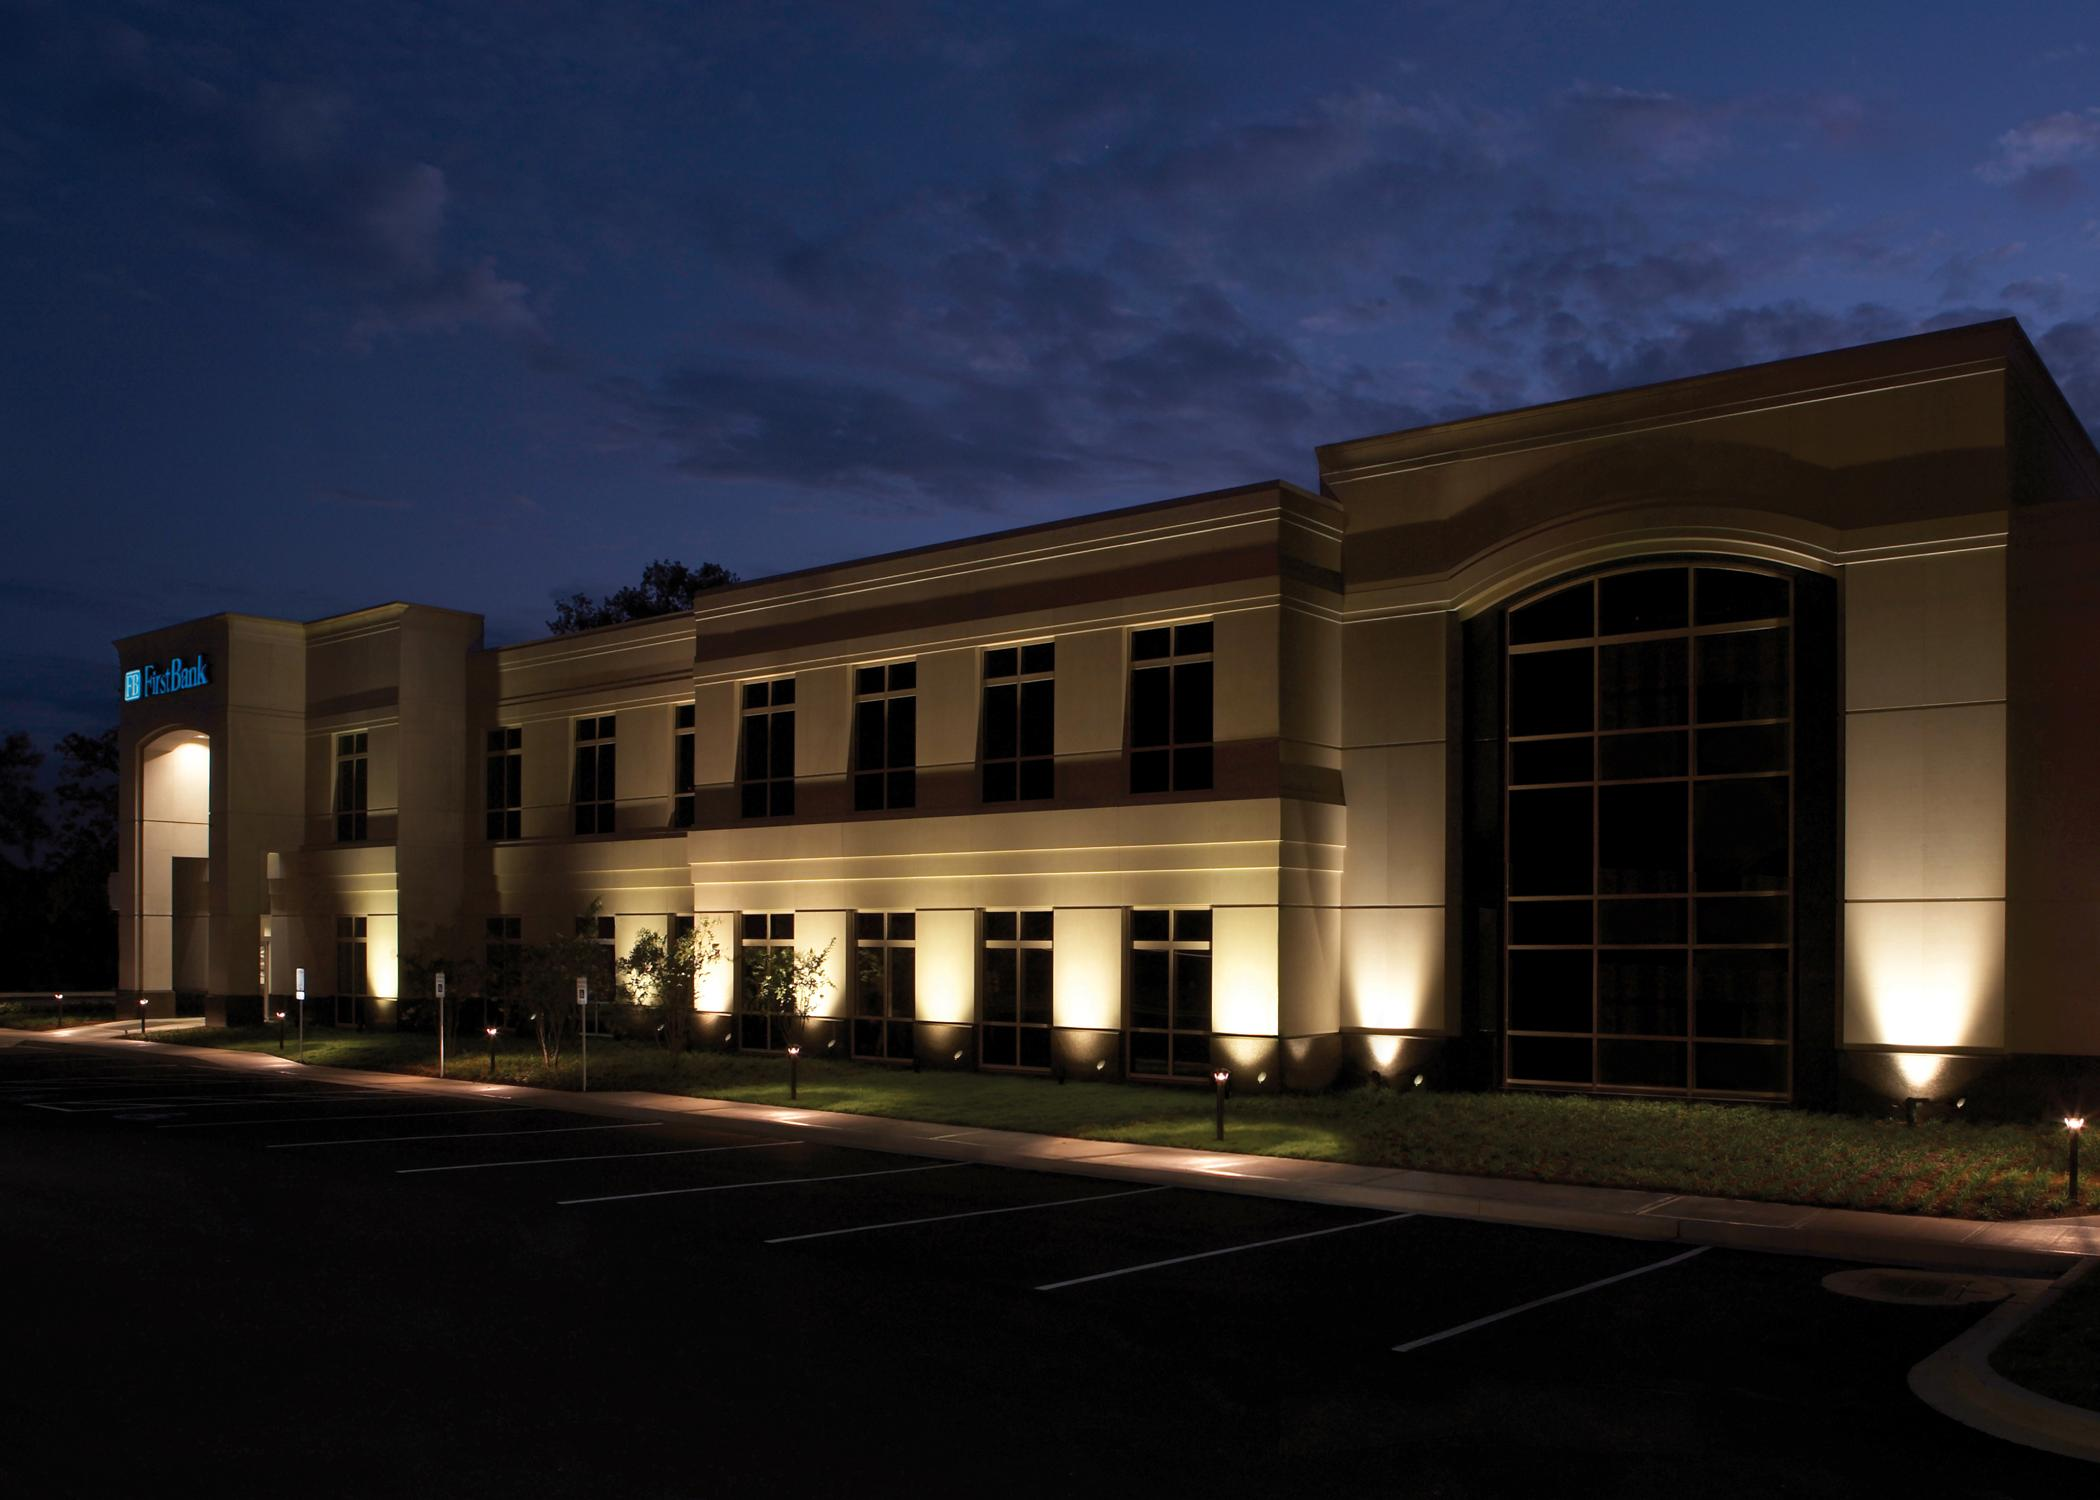 Outdoor lighting commercial building outdoor lighting ideas outdoor aloadofball Images